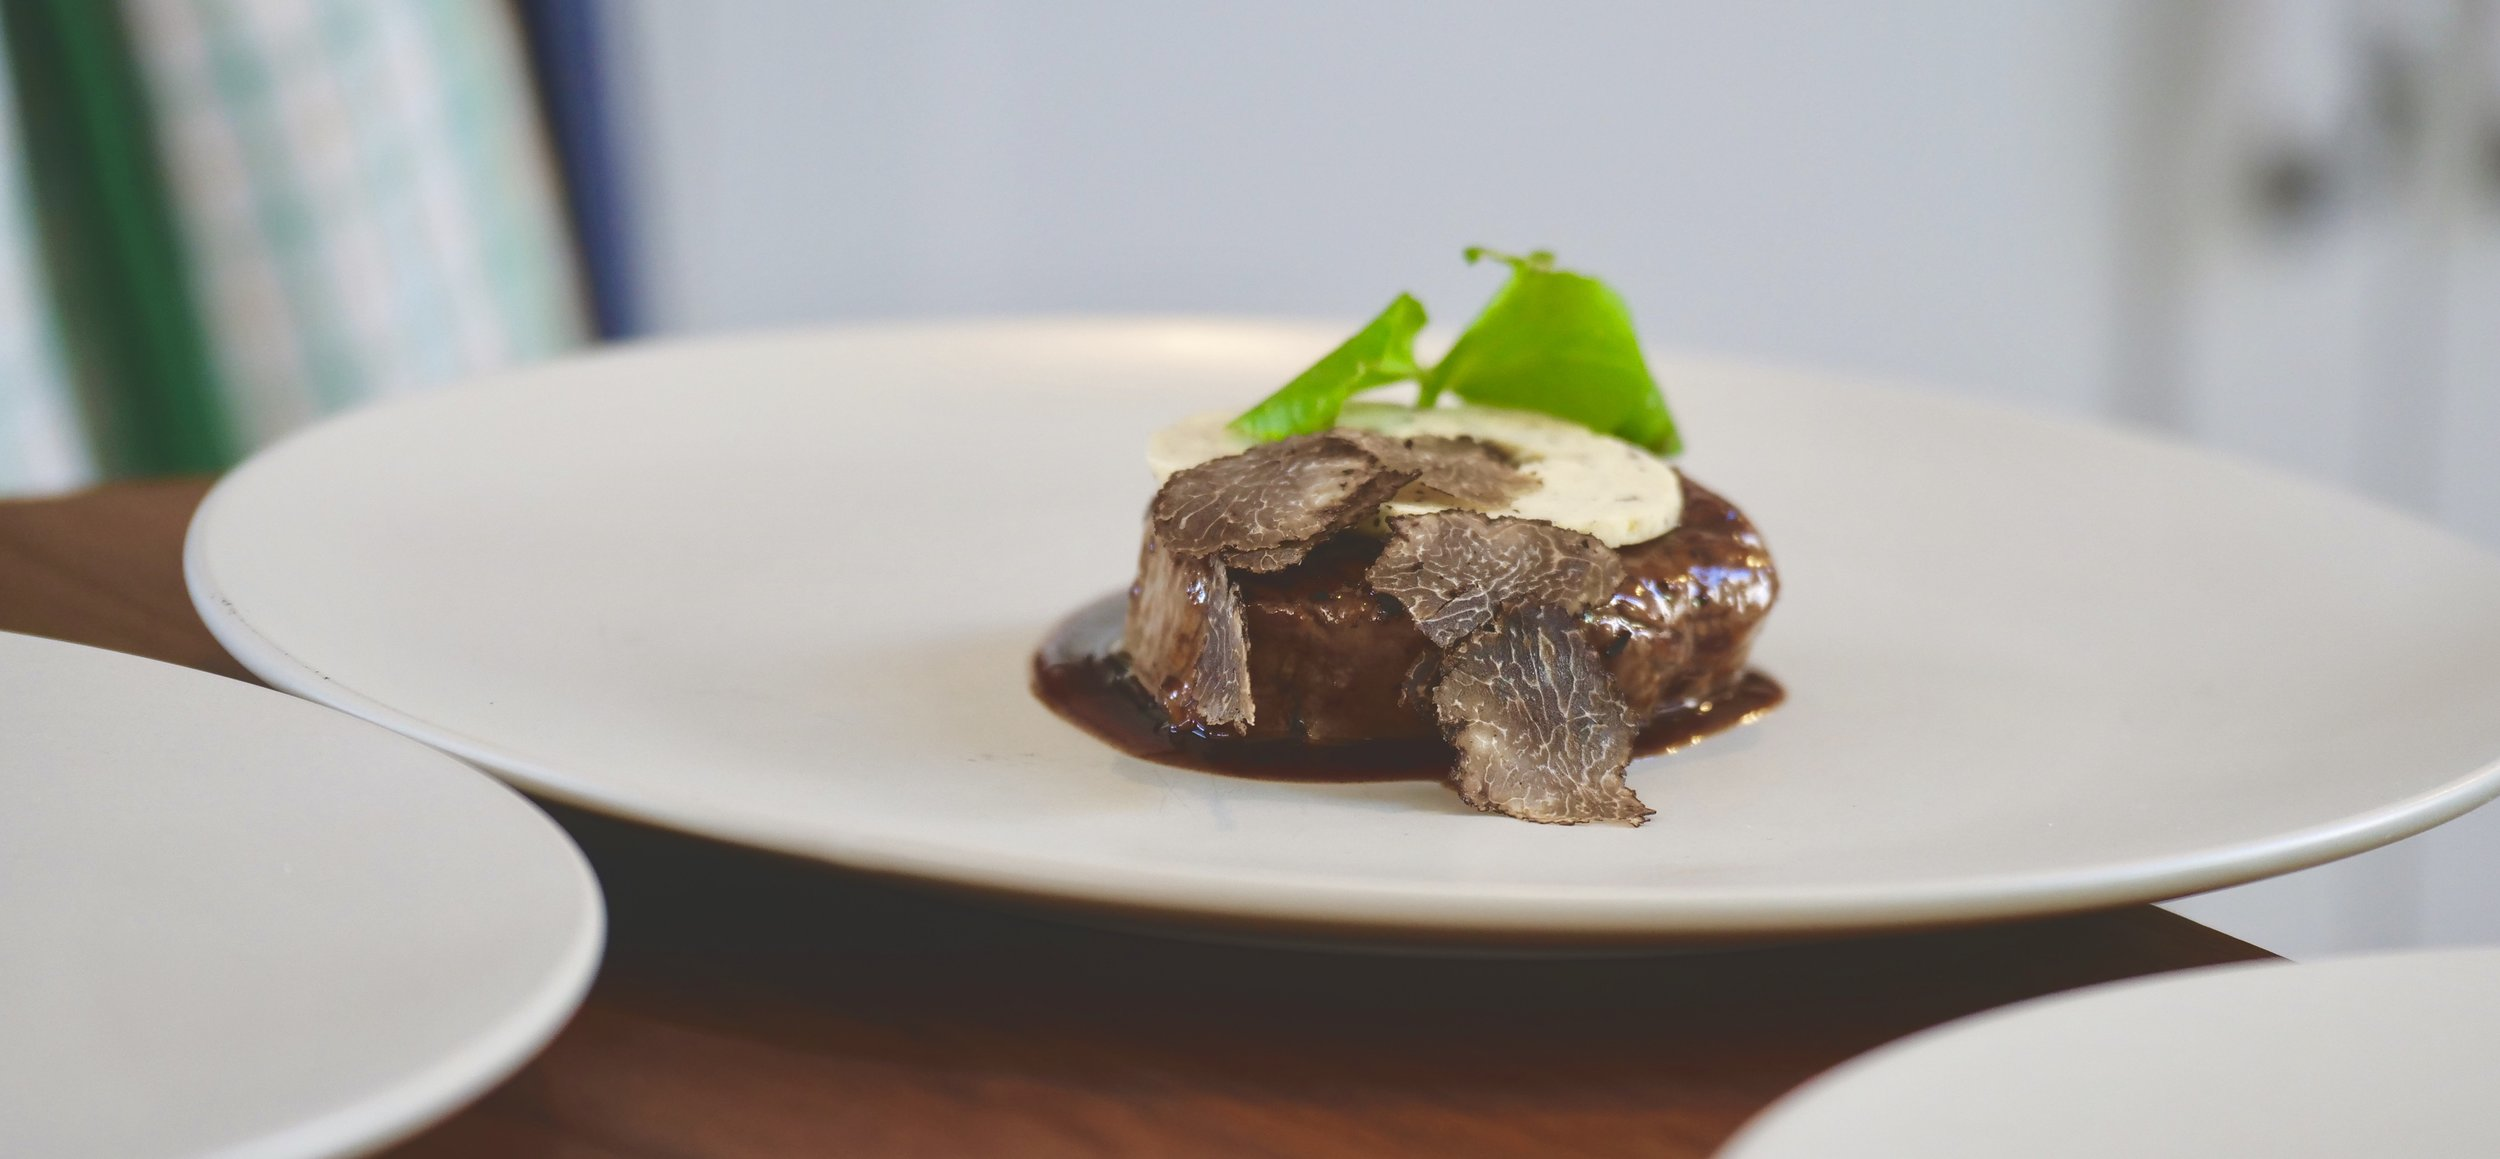 AFTER THE TRUFFLE EDUCATION COMES THE TASTING. BEEF, TRUFFLE AND JUS.